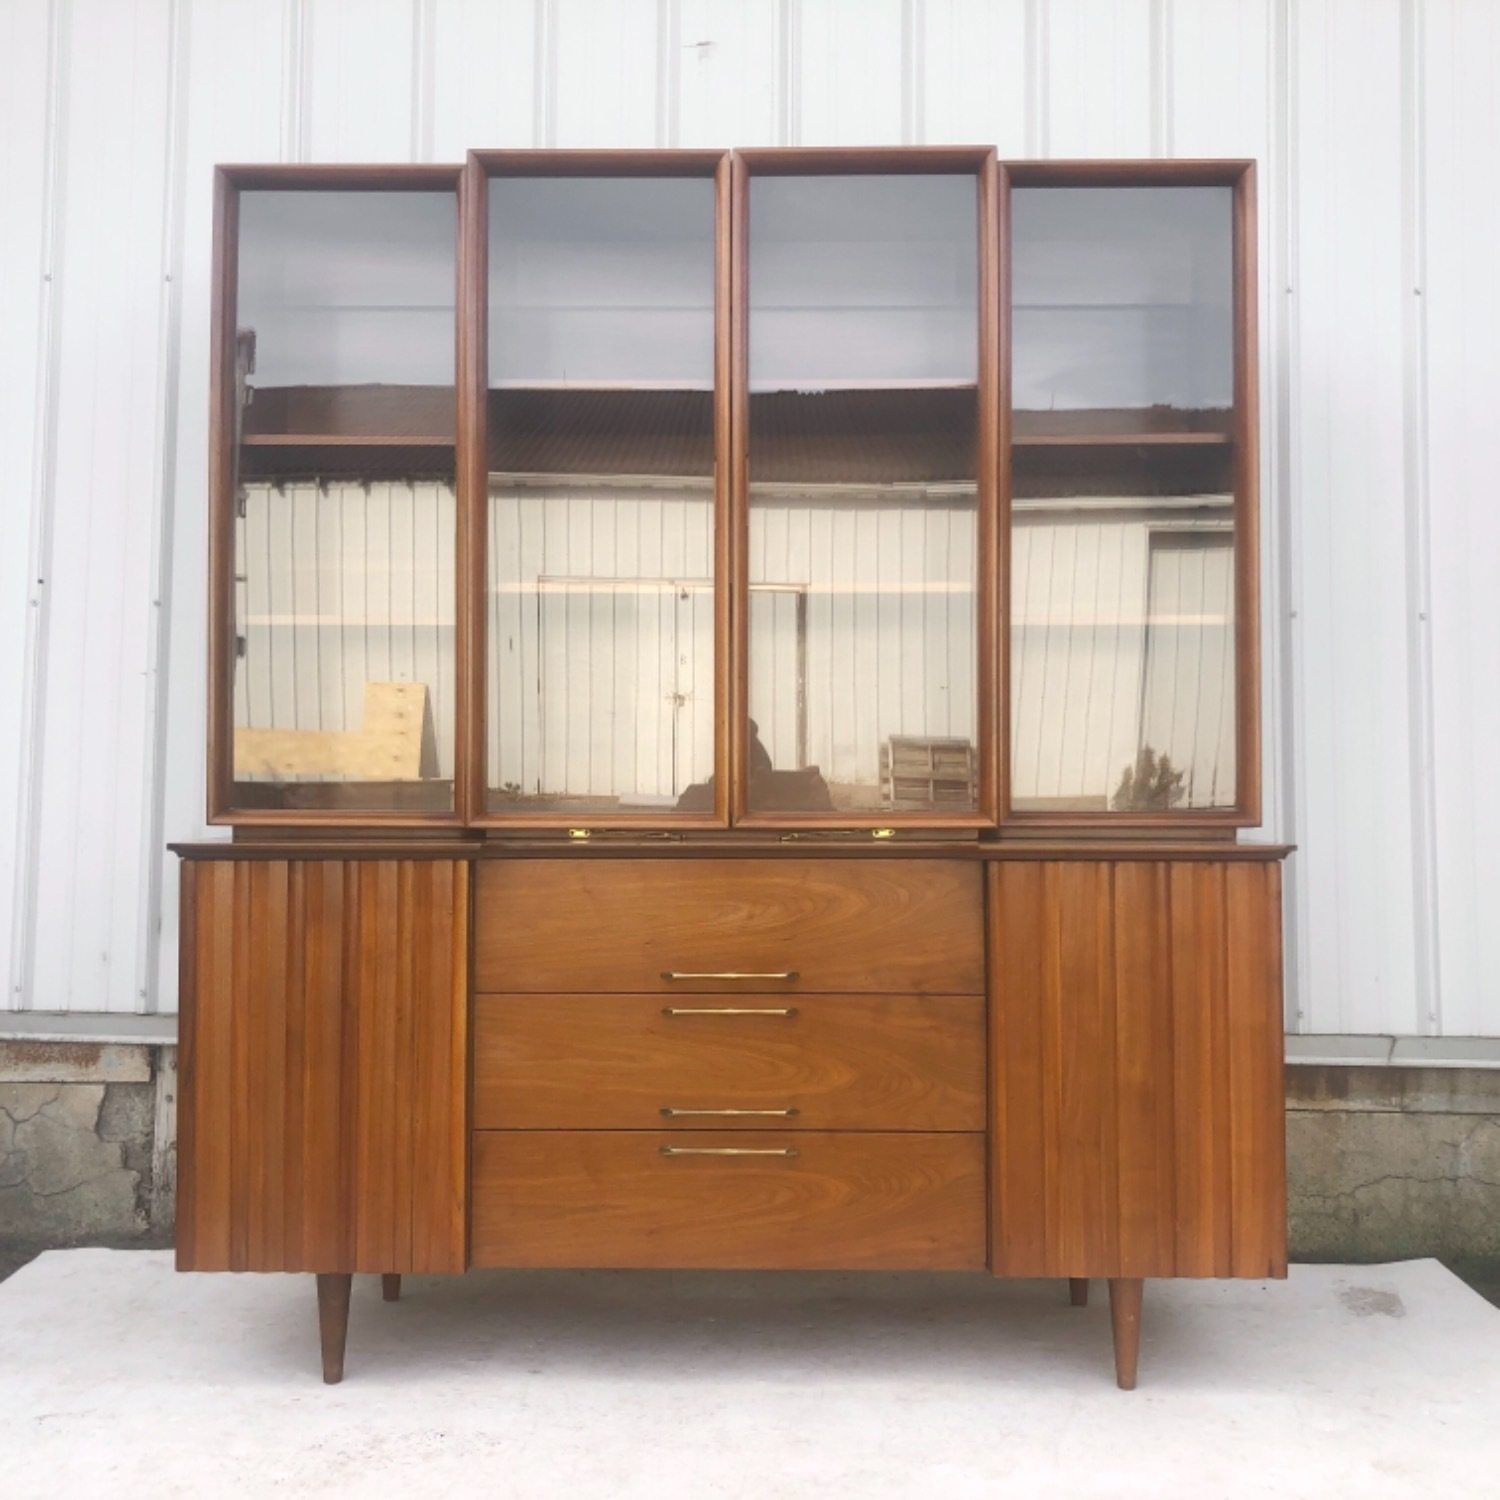 Mid-Century Modern Sideboard With Display Topper - image-1